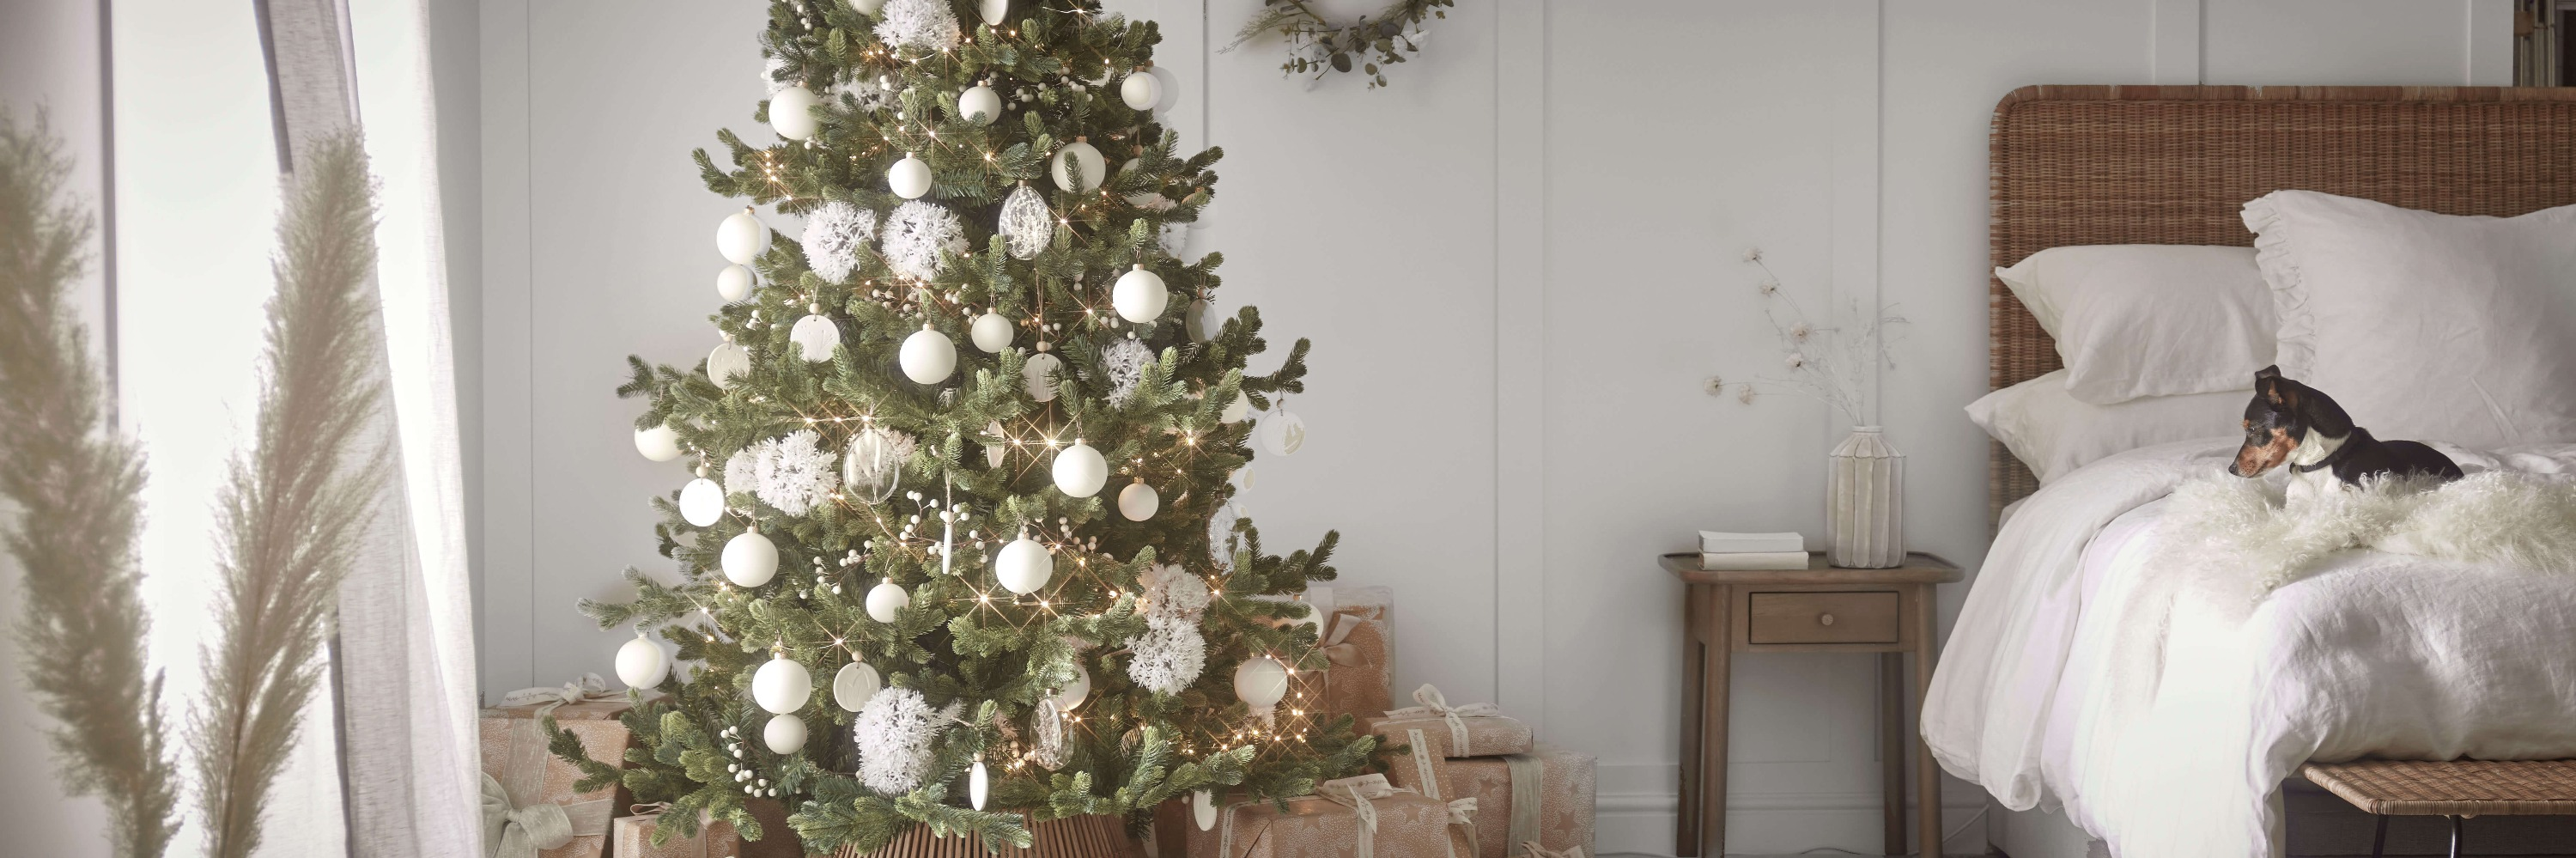 coxandcox.co.uk - Christmas Decorations starting at just £4